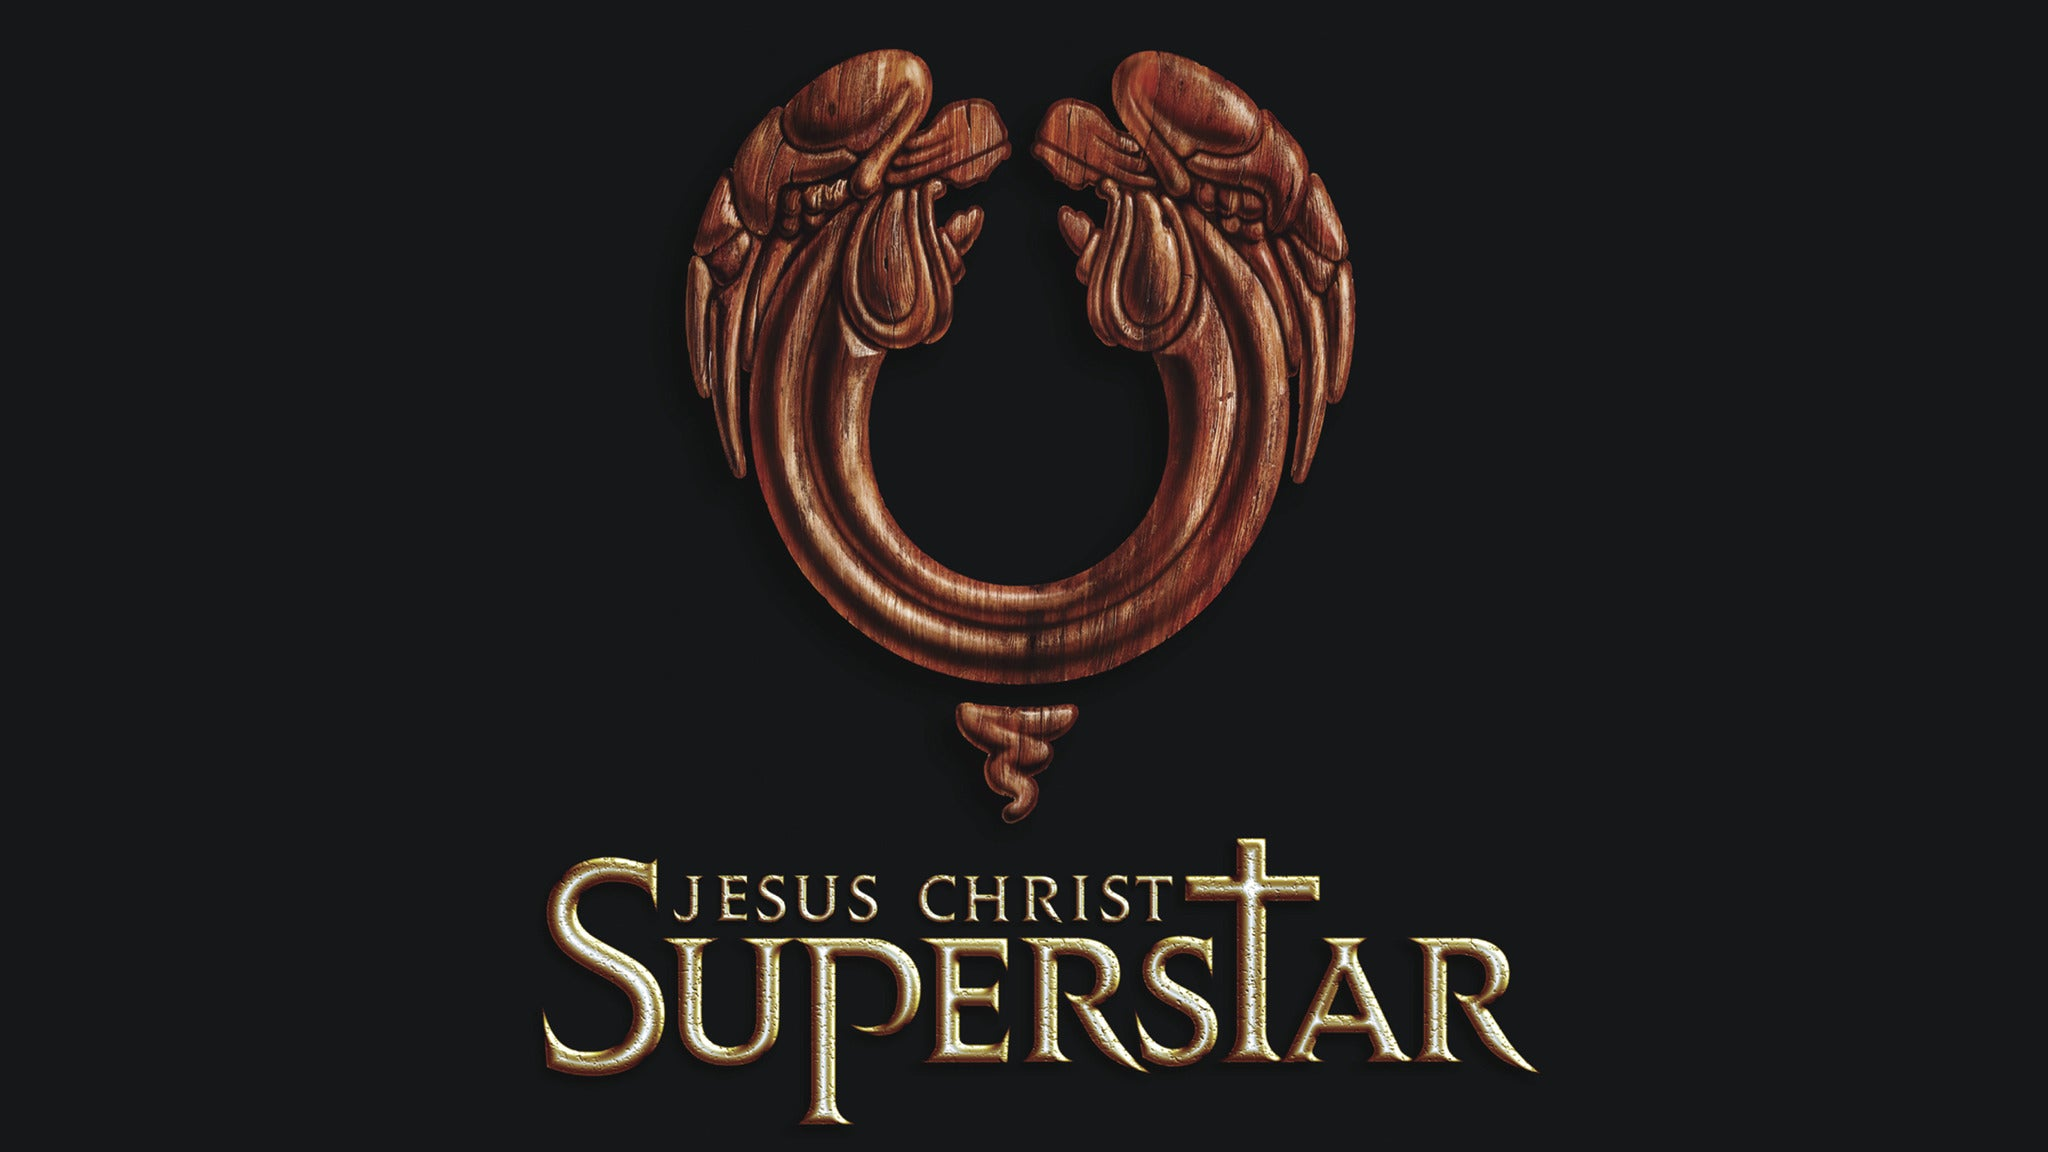 Jesus Christ Superstar at Ruth N Halls Theatre - Bloomington, IN 47405